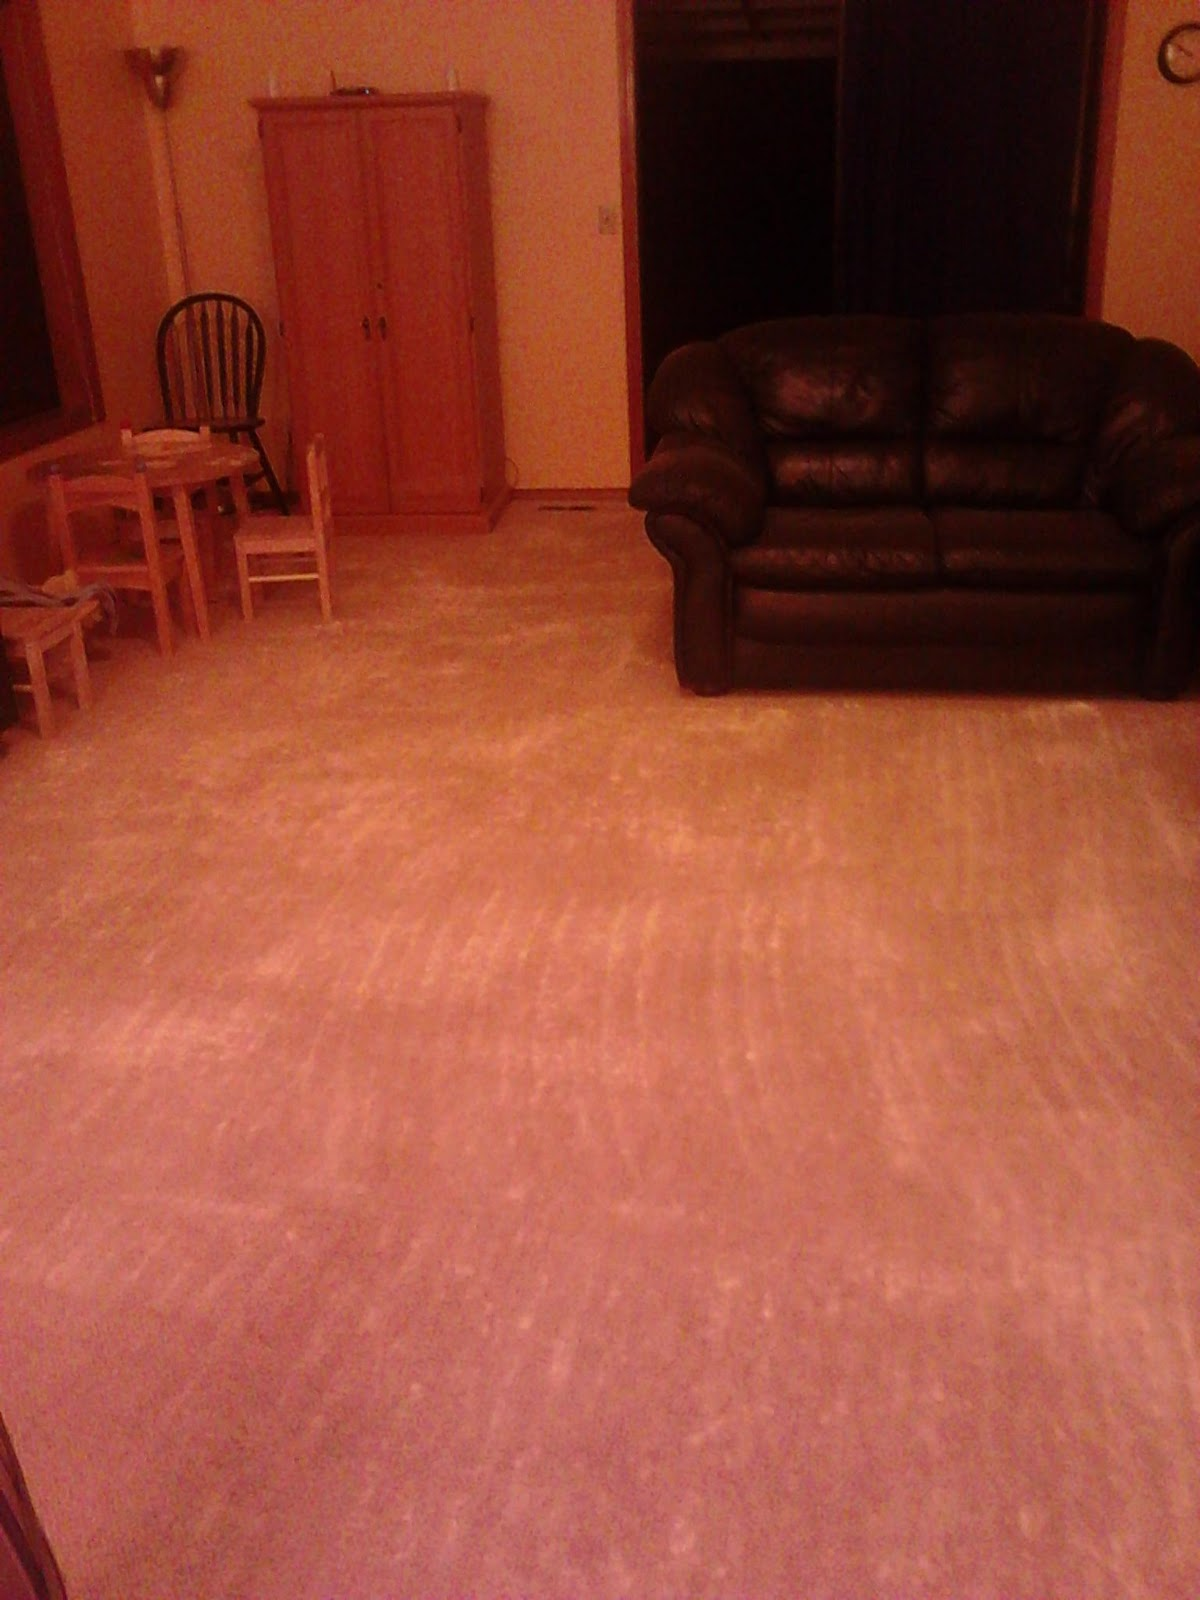 How Long To Leave Diatomaceous Earth On Carpet For Fleas